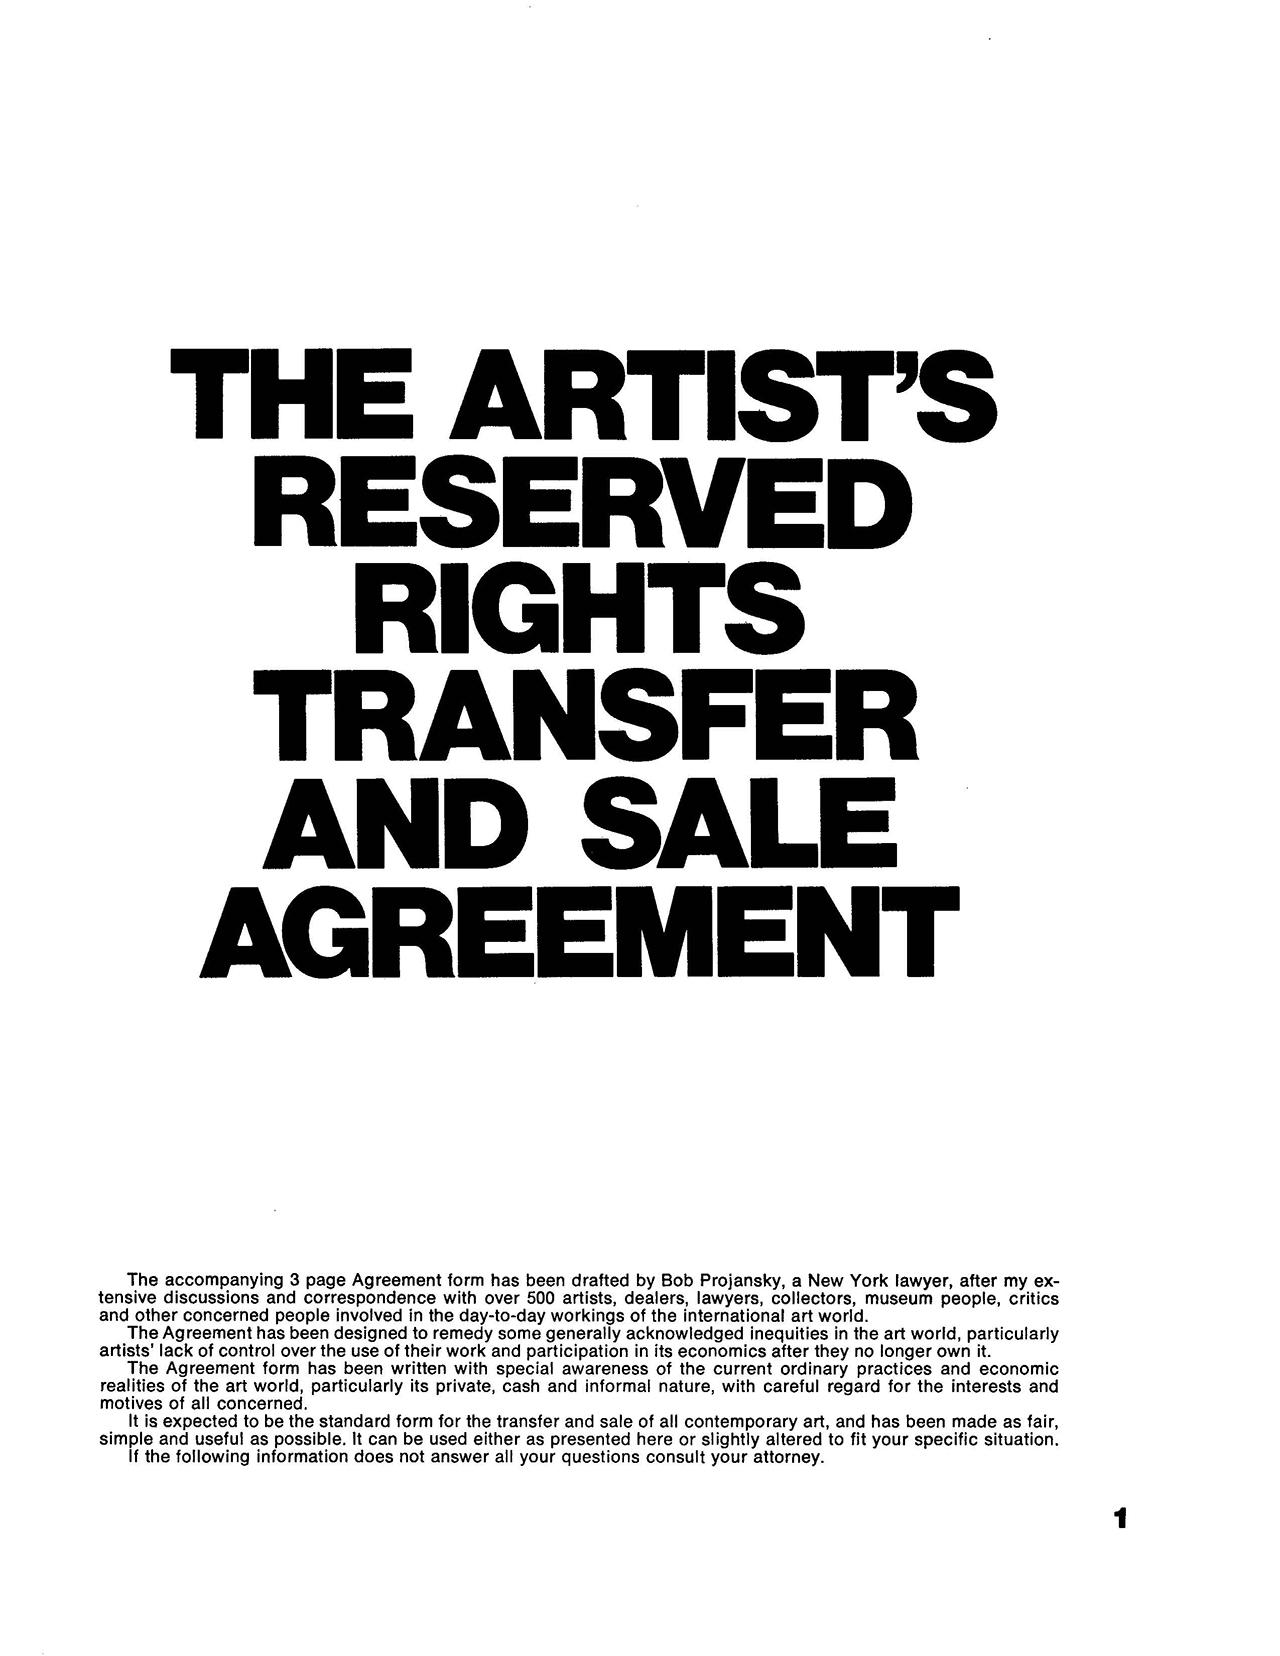 Seth Siegelaub and Robert Projansky, The Artist's Reserved Rights Transfer  and Sale Agreement, 1971. Courtesy: Primary Information